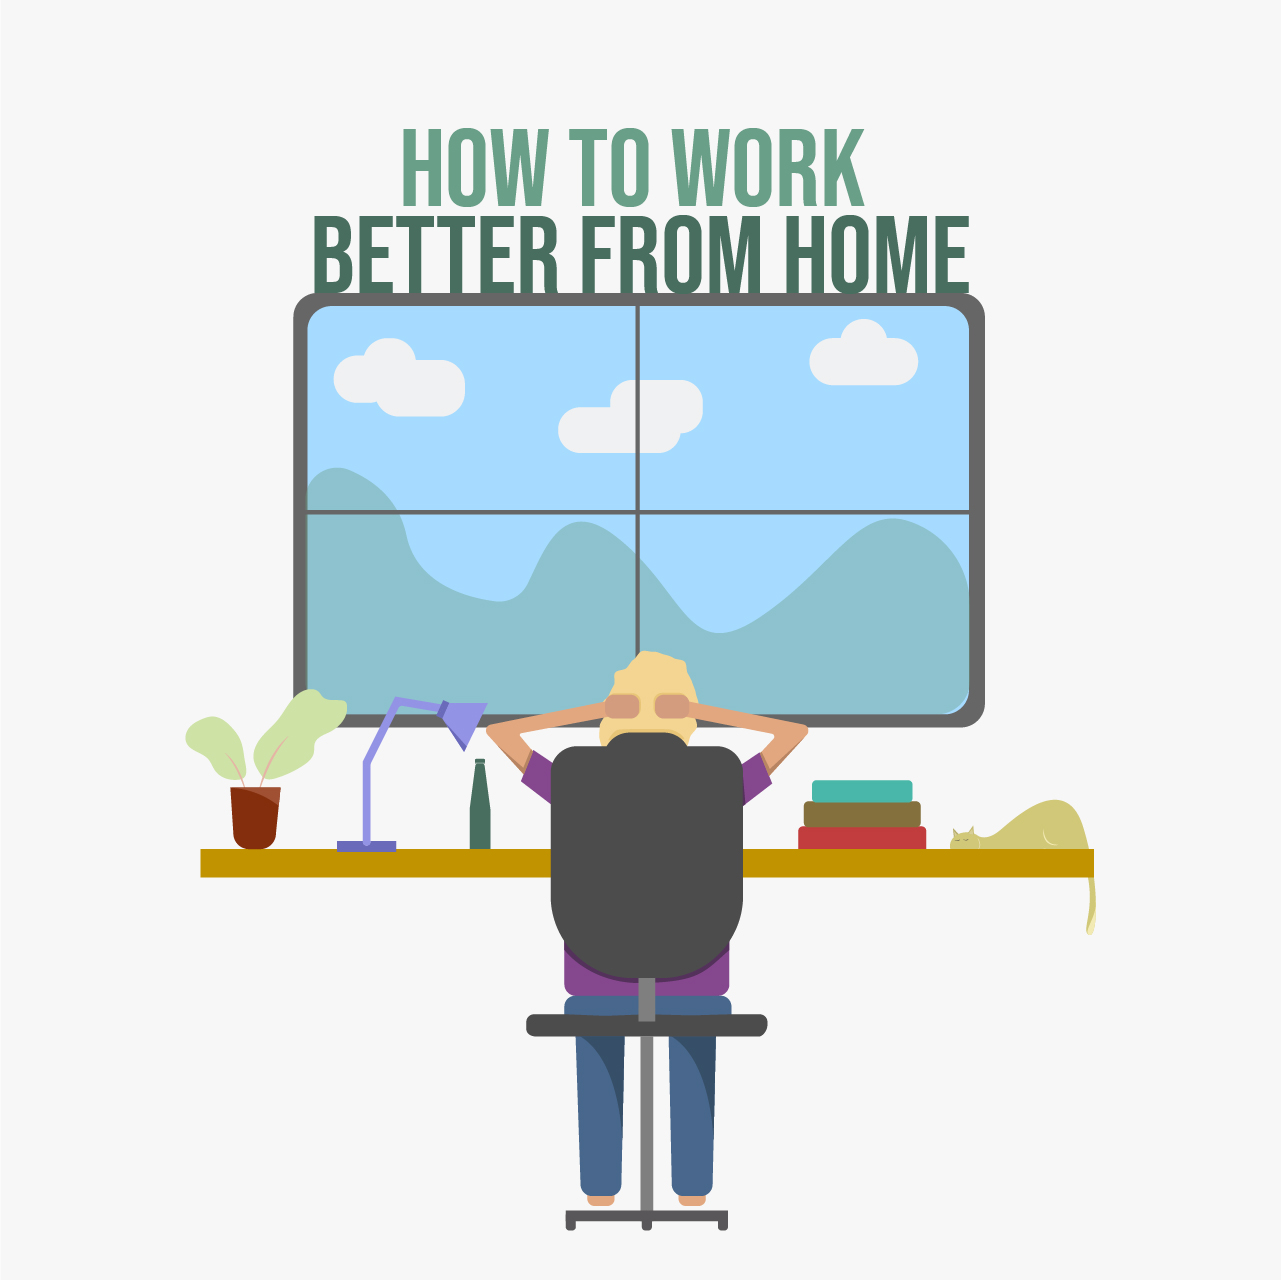 How To Work Better From Home